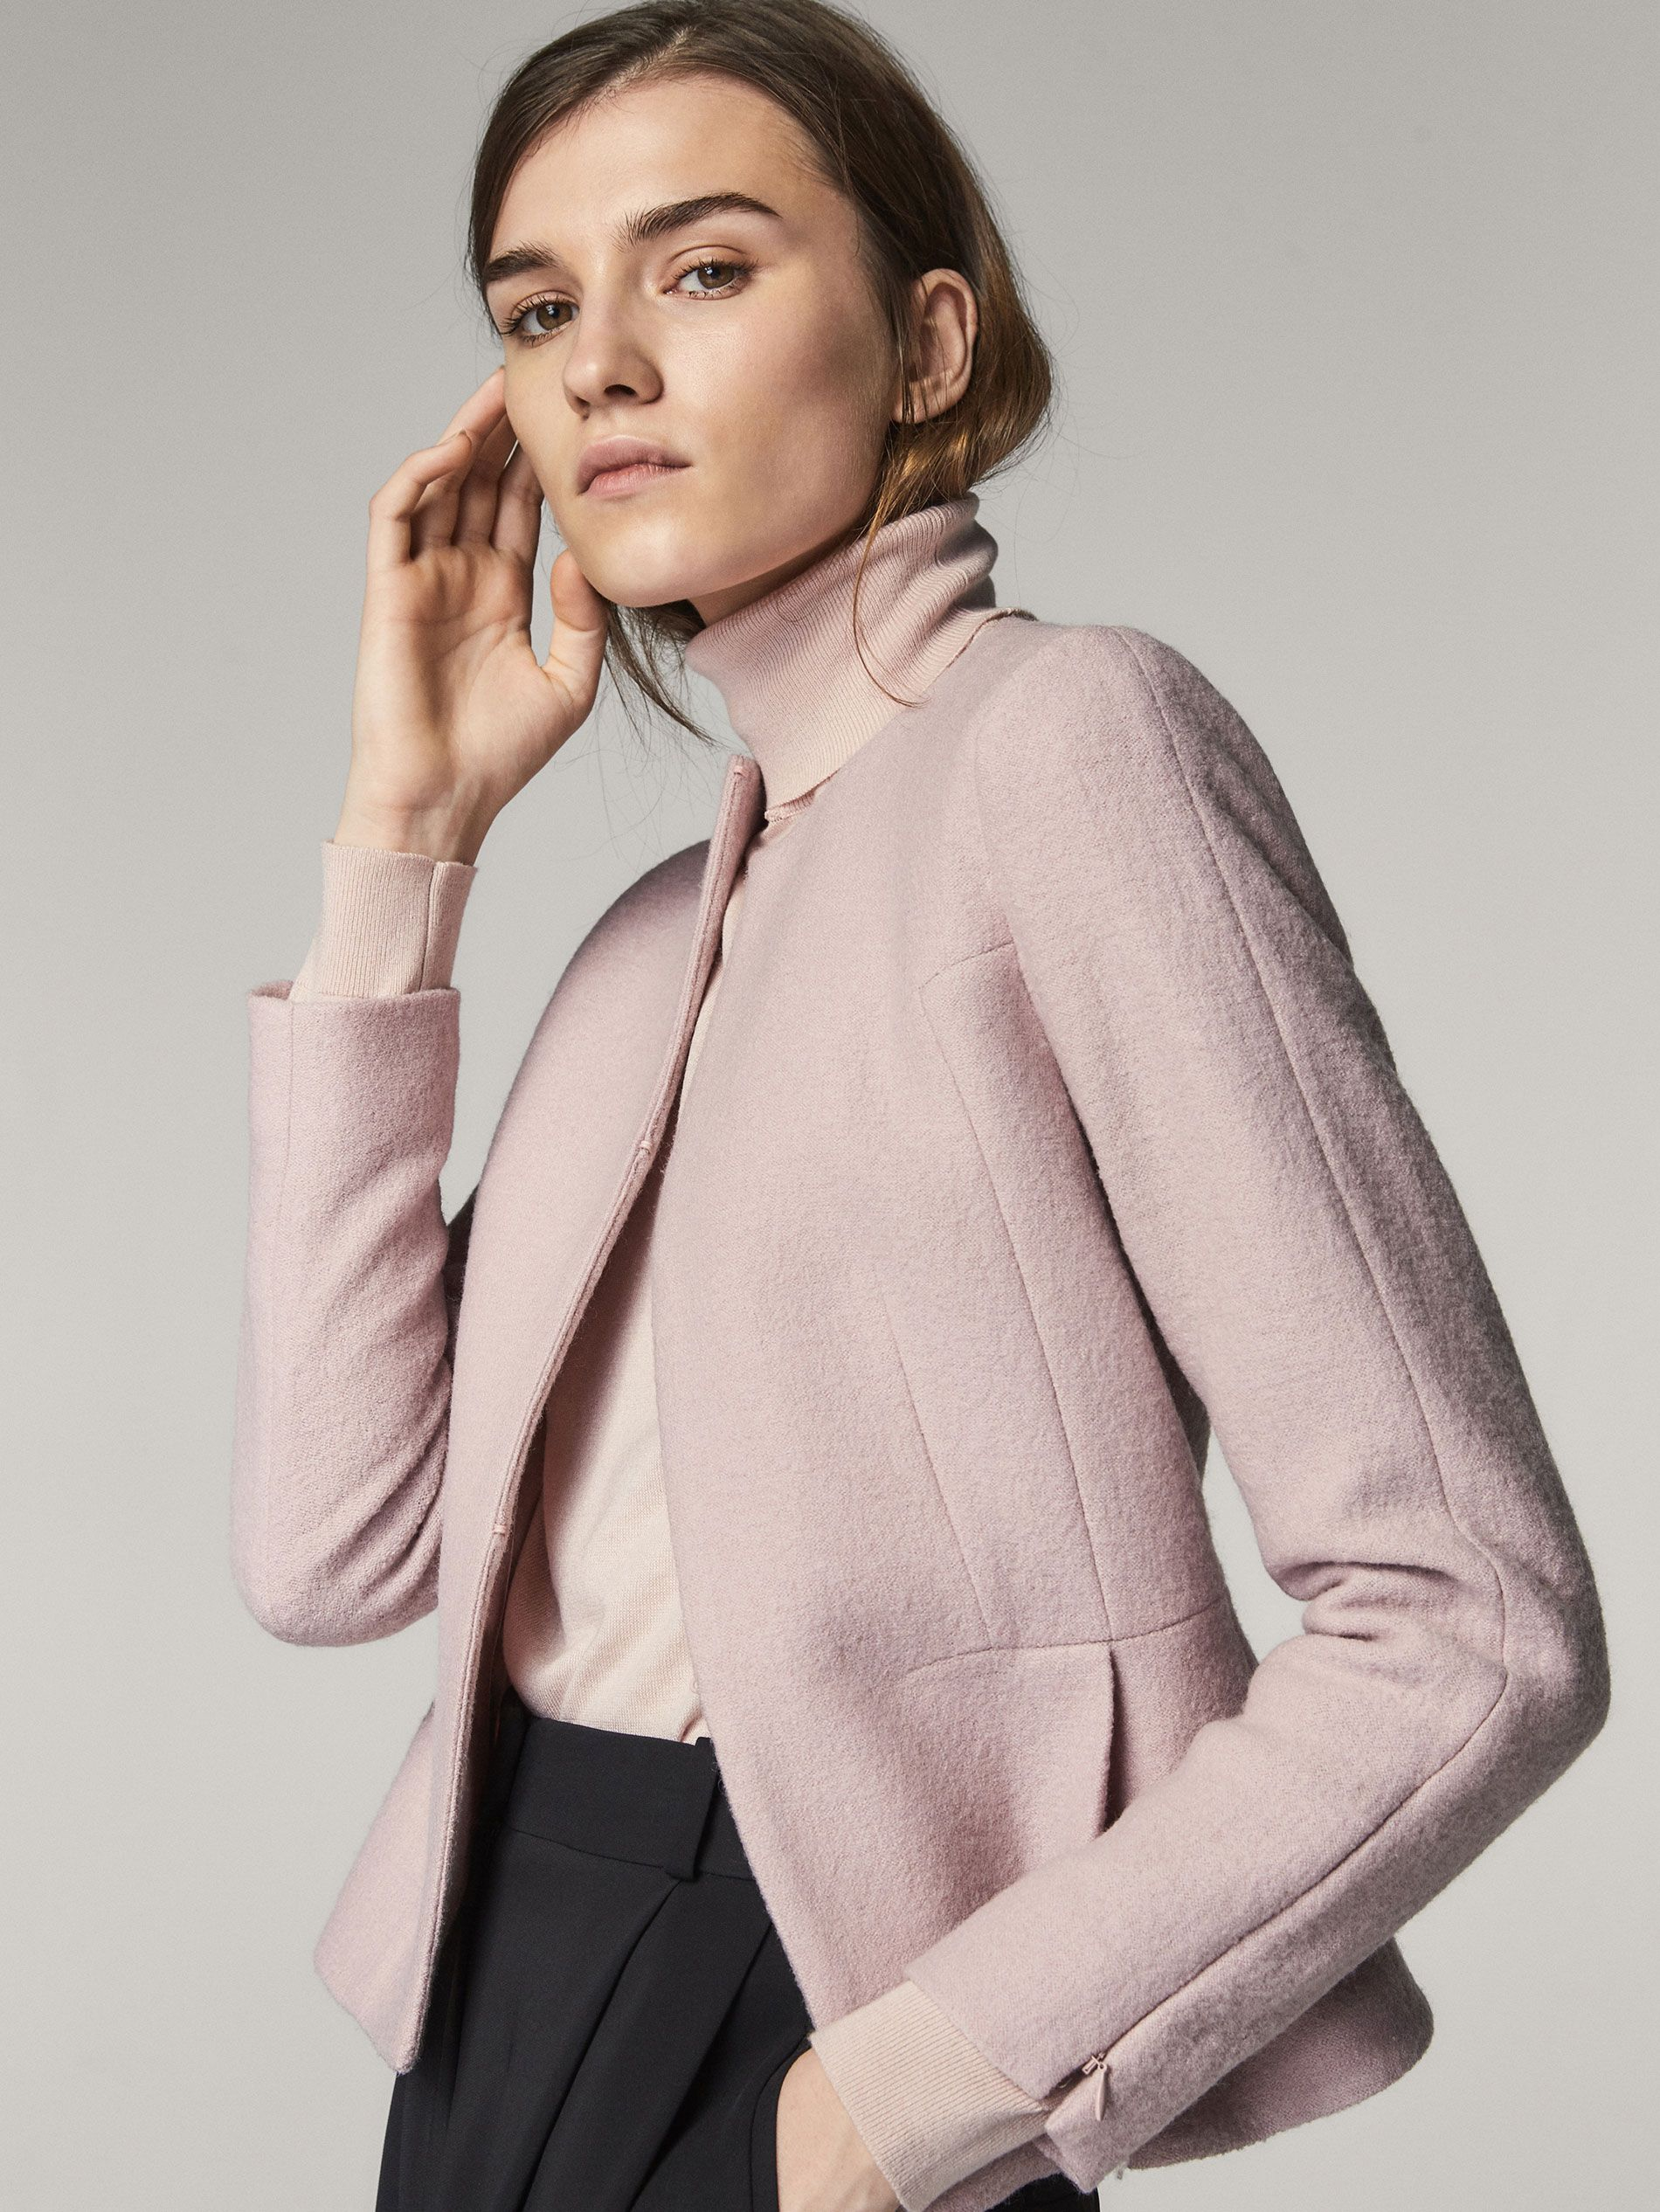 f62236cd9d5 Fall Winter 2017 Women´s BOILED WOOL JACKET WITH DARTS DETAIL at Massimo  Dutti for 150. Effortless elegance!